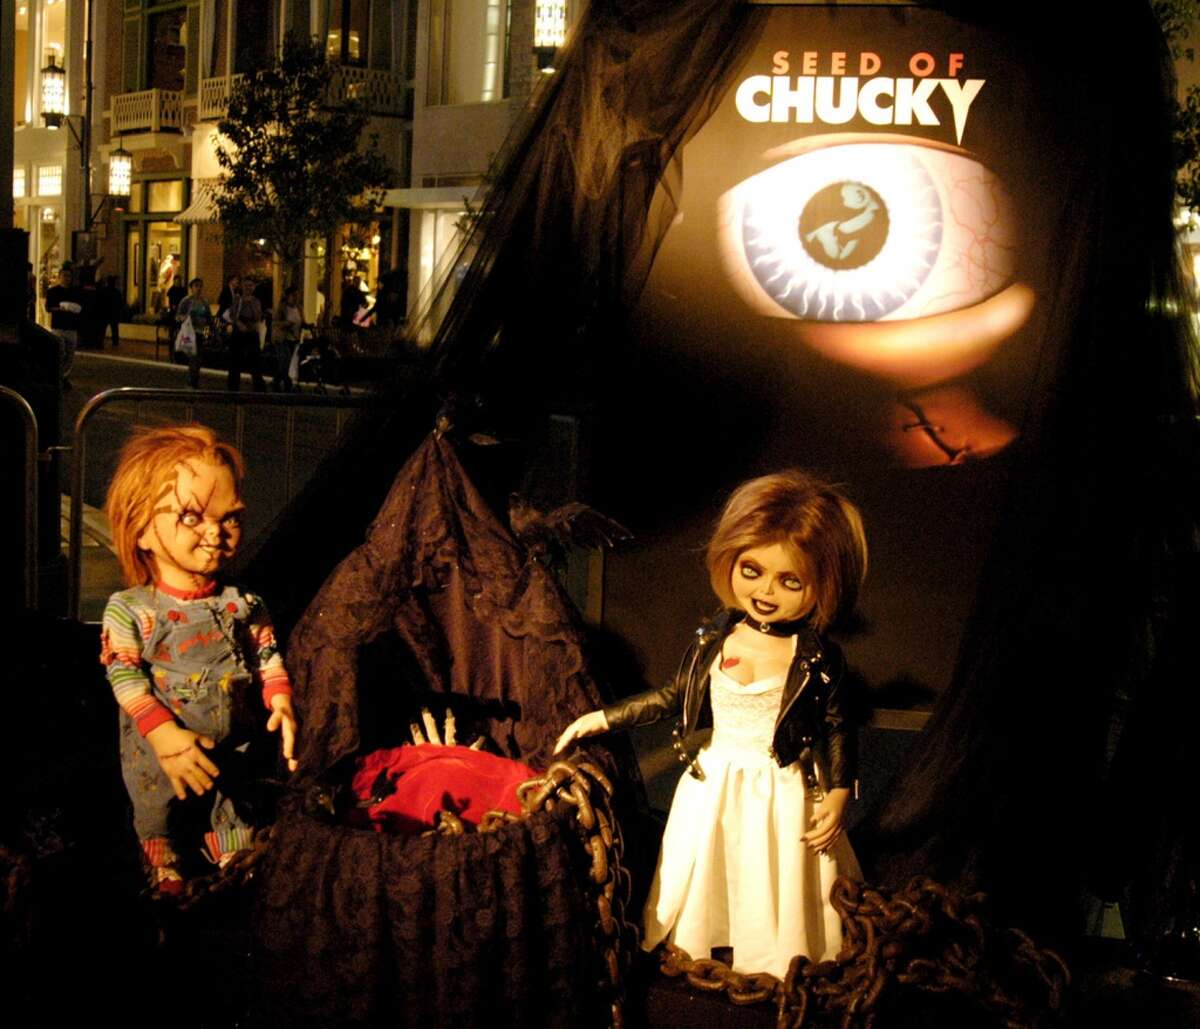 Seed of Chucky (2004) Available on HBO Dec. 1 Chucky and Tiffany are resurrected by their innocent son, Glen, and hit Hollywood, where a movie depicting the killer dolls' murder spree is underway.